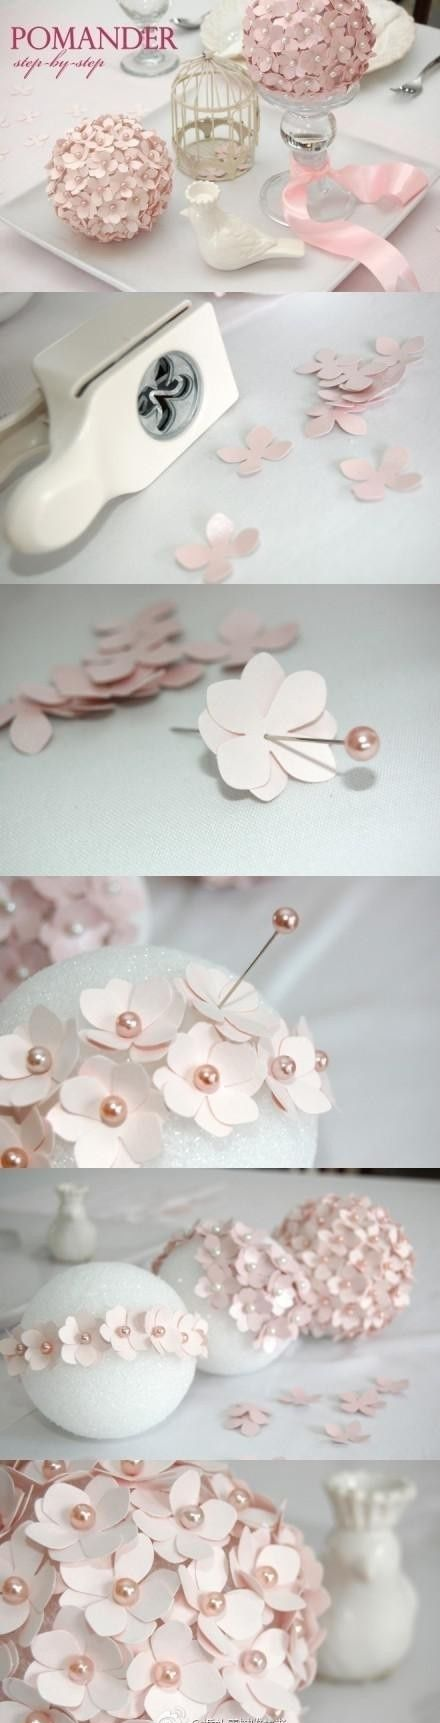 decorar com flores de papel